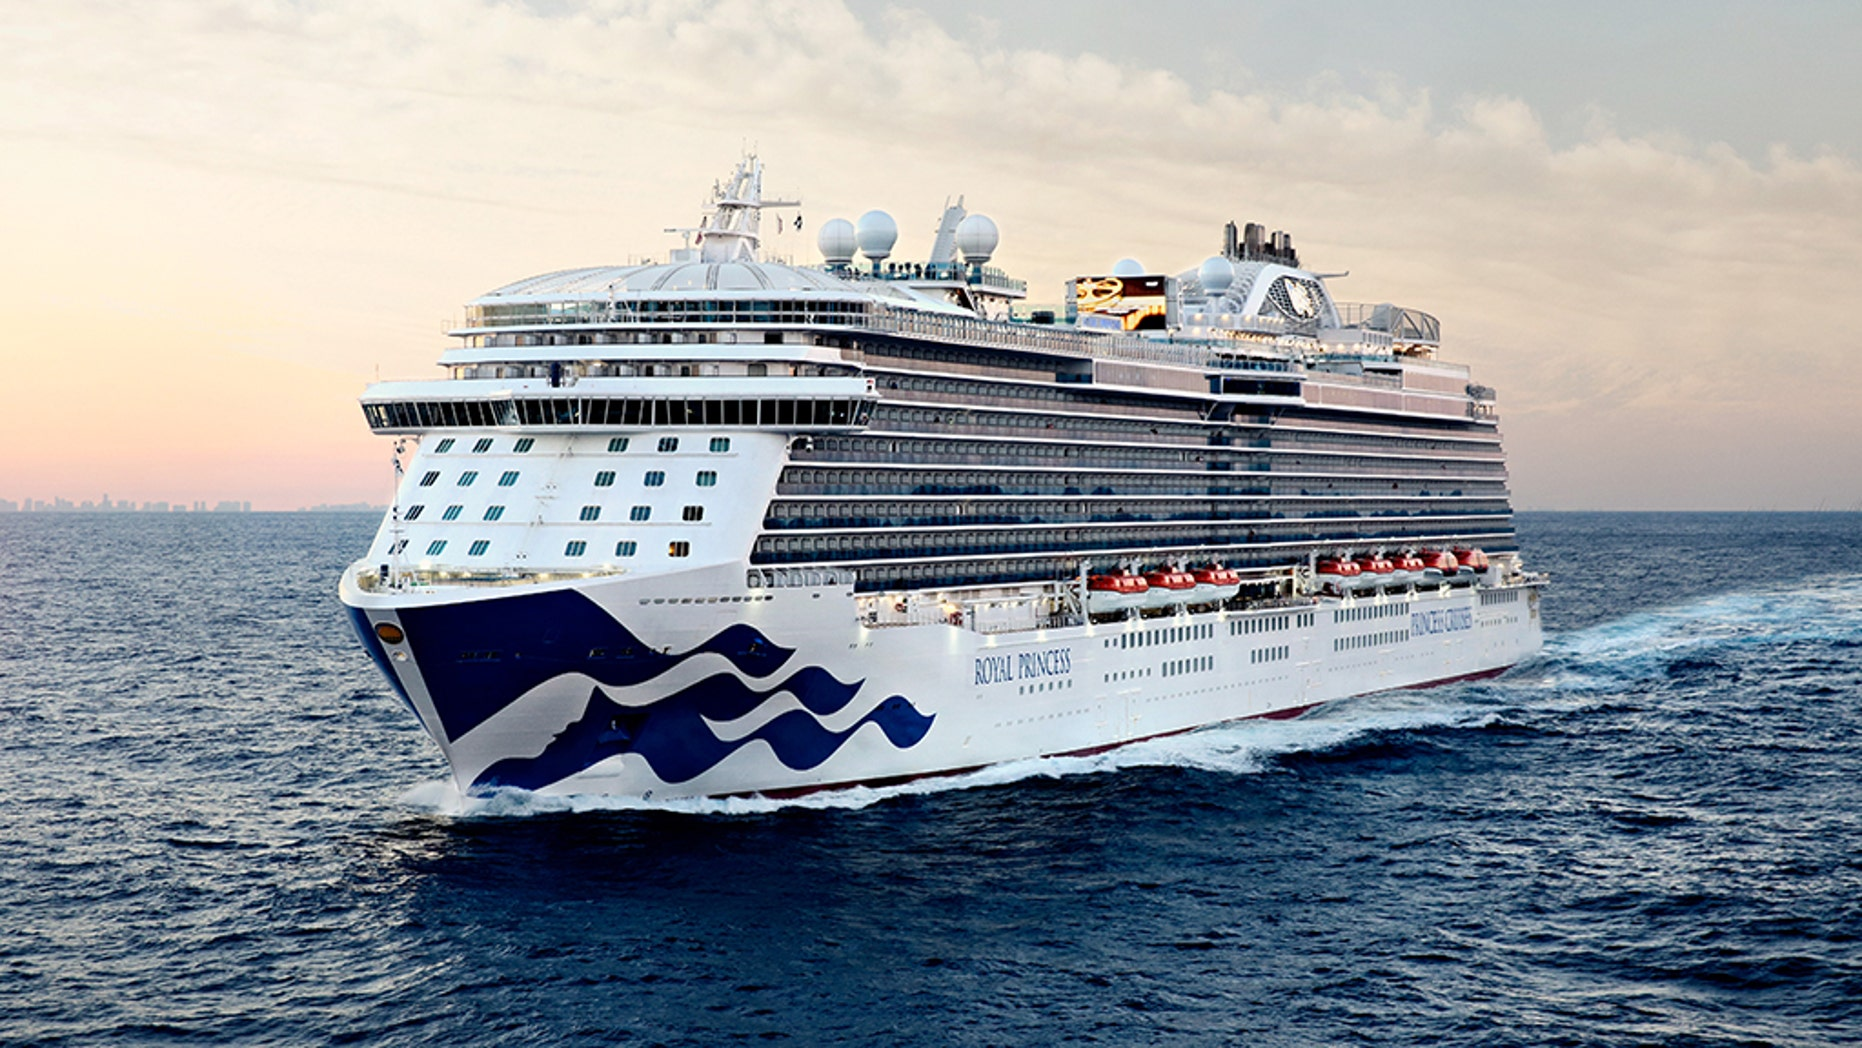 Federal Bureau of Investigation probing American woman's death on cruise ship